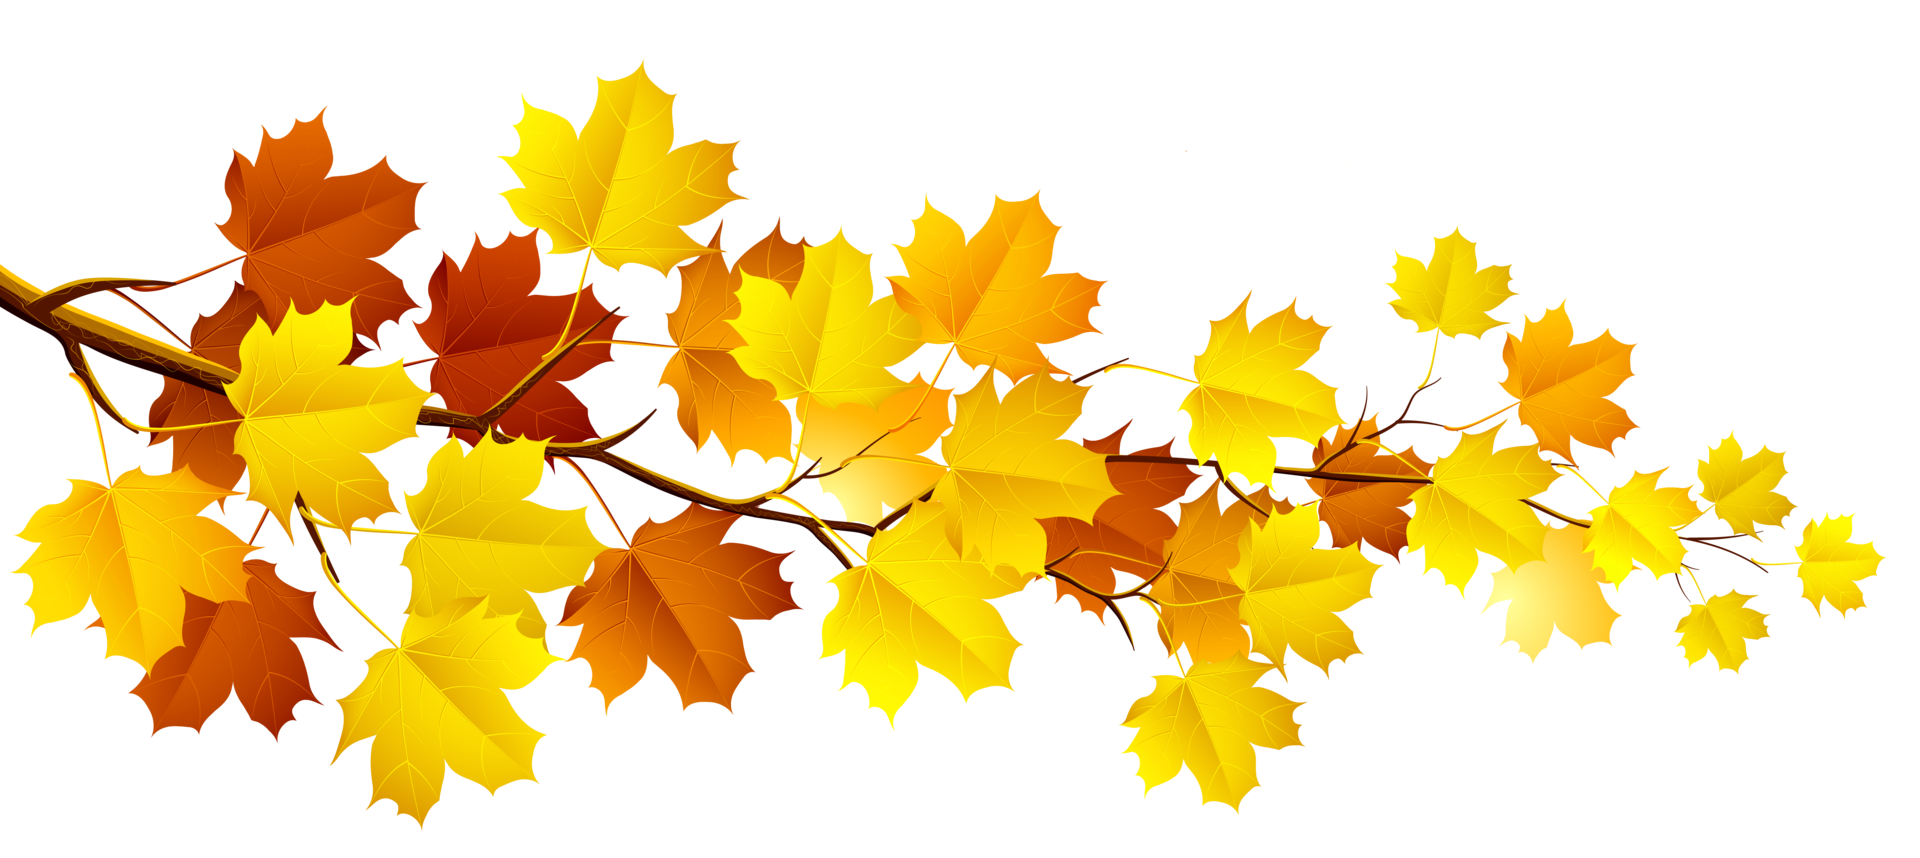 Fall leaves on a tree branch